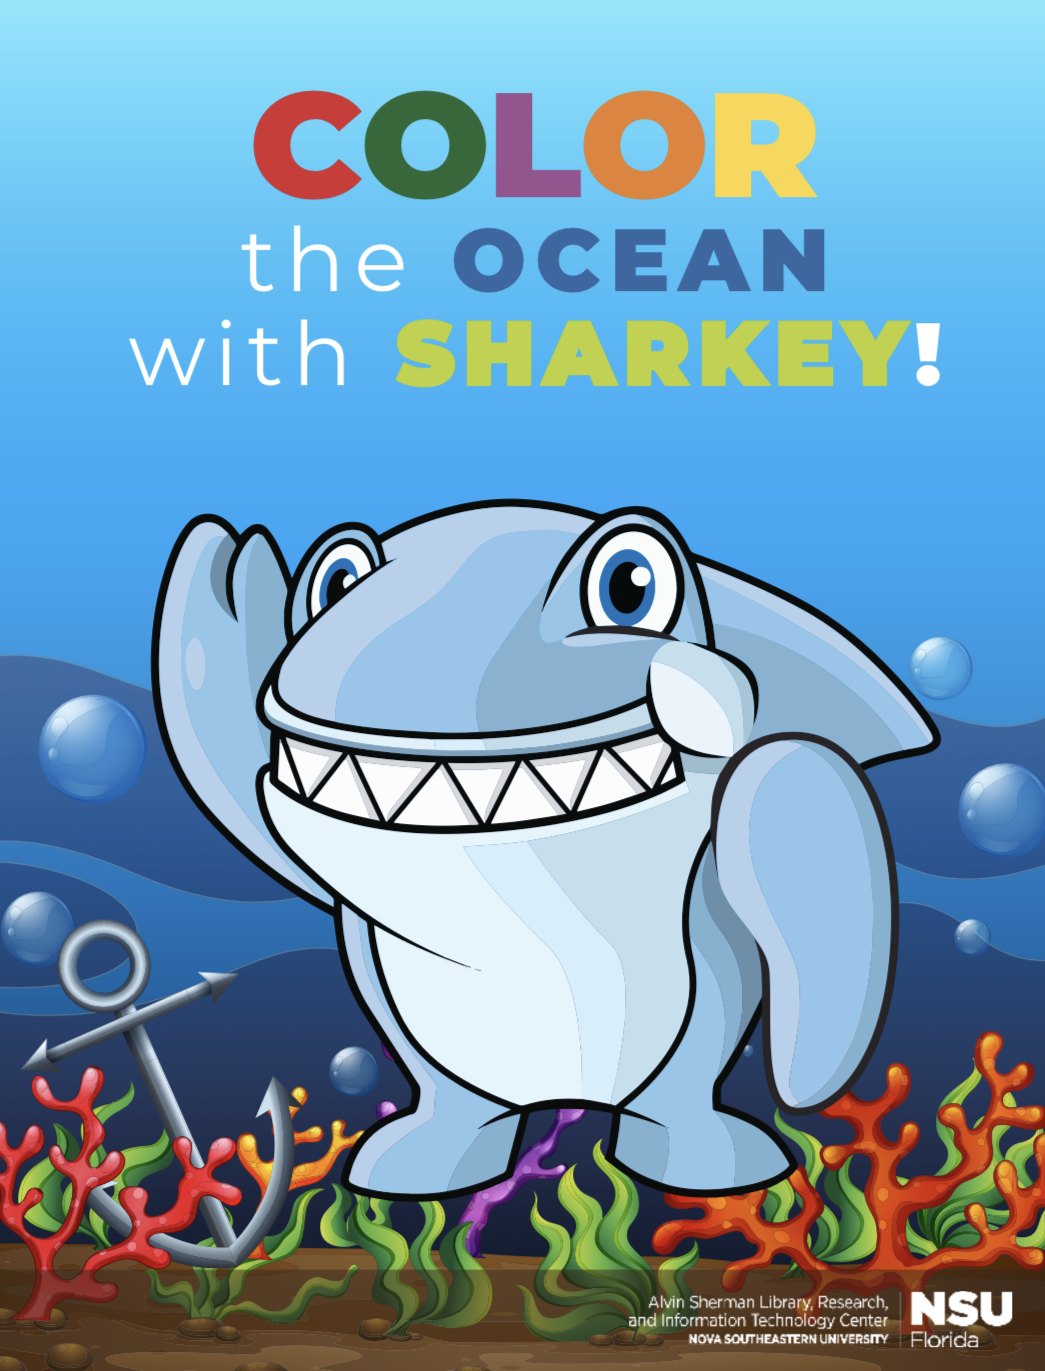 Sharkey coloring book